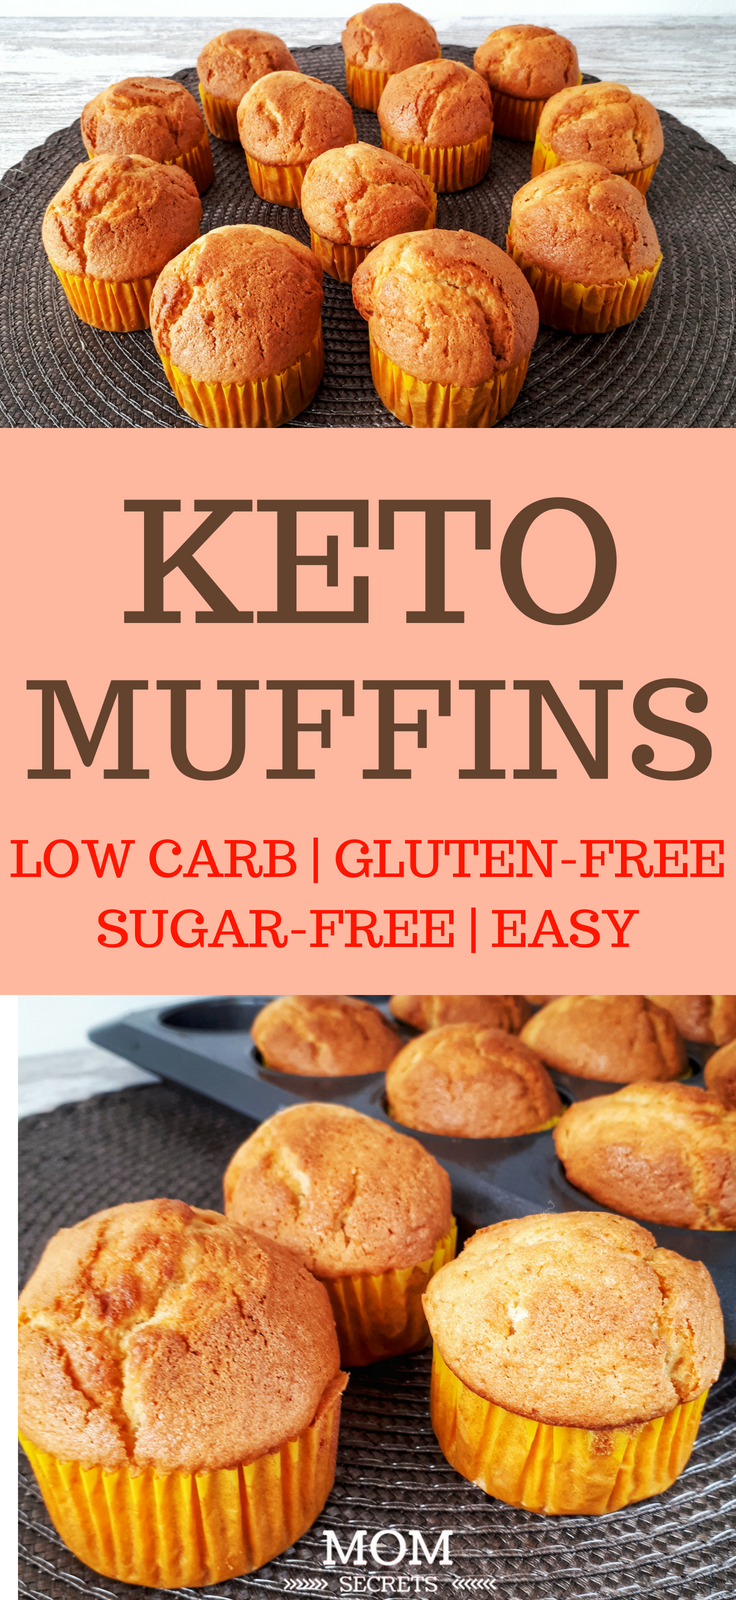 These low carb keto muffins are perfect as one of your Keto breakfast recipes. They are easy to make and healthy. They have such an amazing orange flavor. Ketogenic diet recipes can be fast! Try this low carb keto dessert or use them as Keto snacks when you need energy during the day! I used almond flour but you can replace it with coconut flour as well and stay fit on your Keto diet!